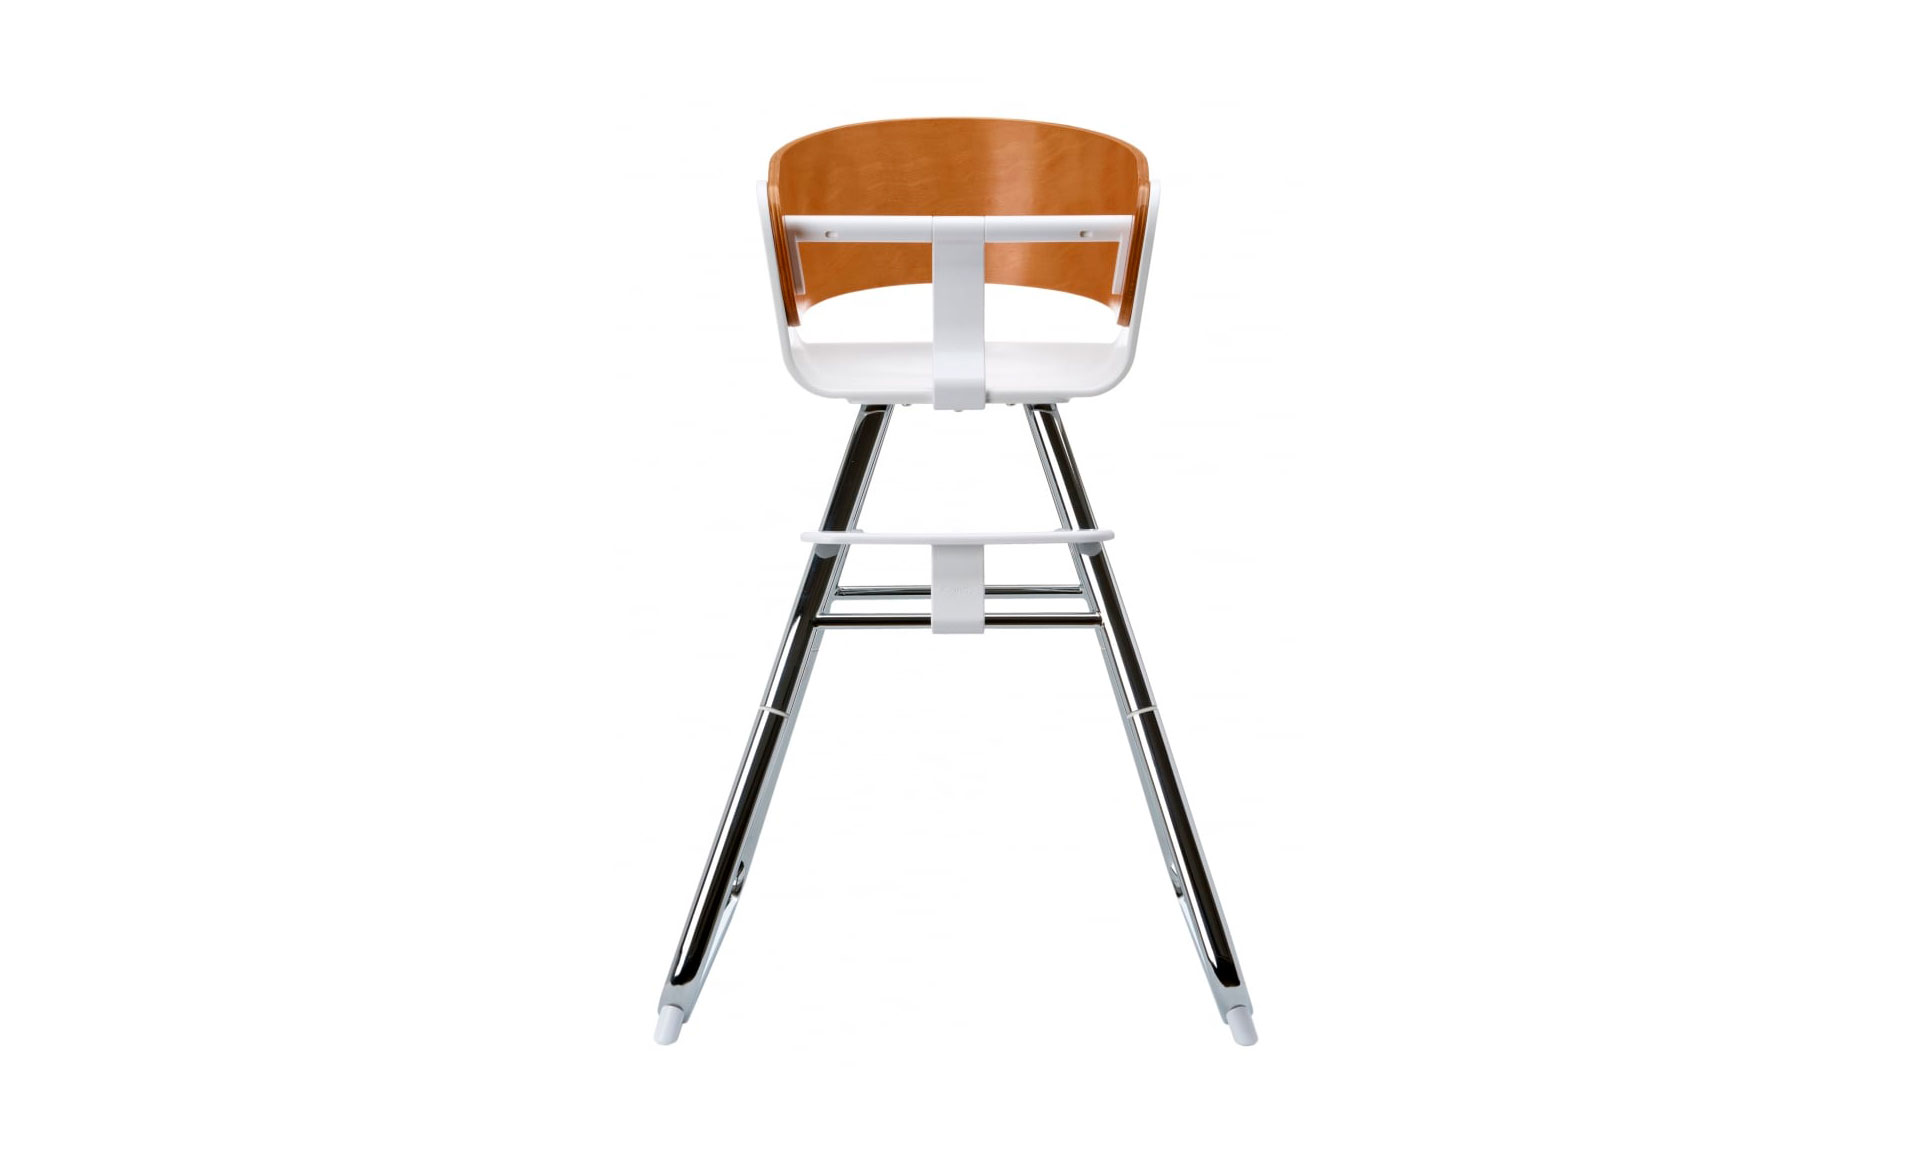 Product recall: iCandy recalls some batches of MiChair high chair – Which? News